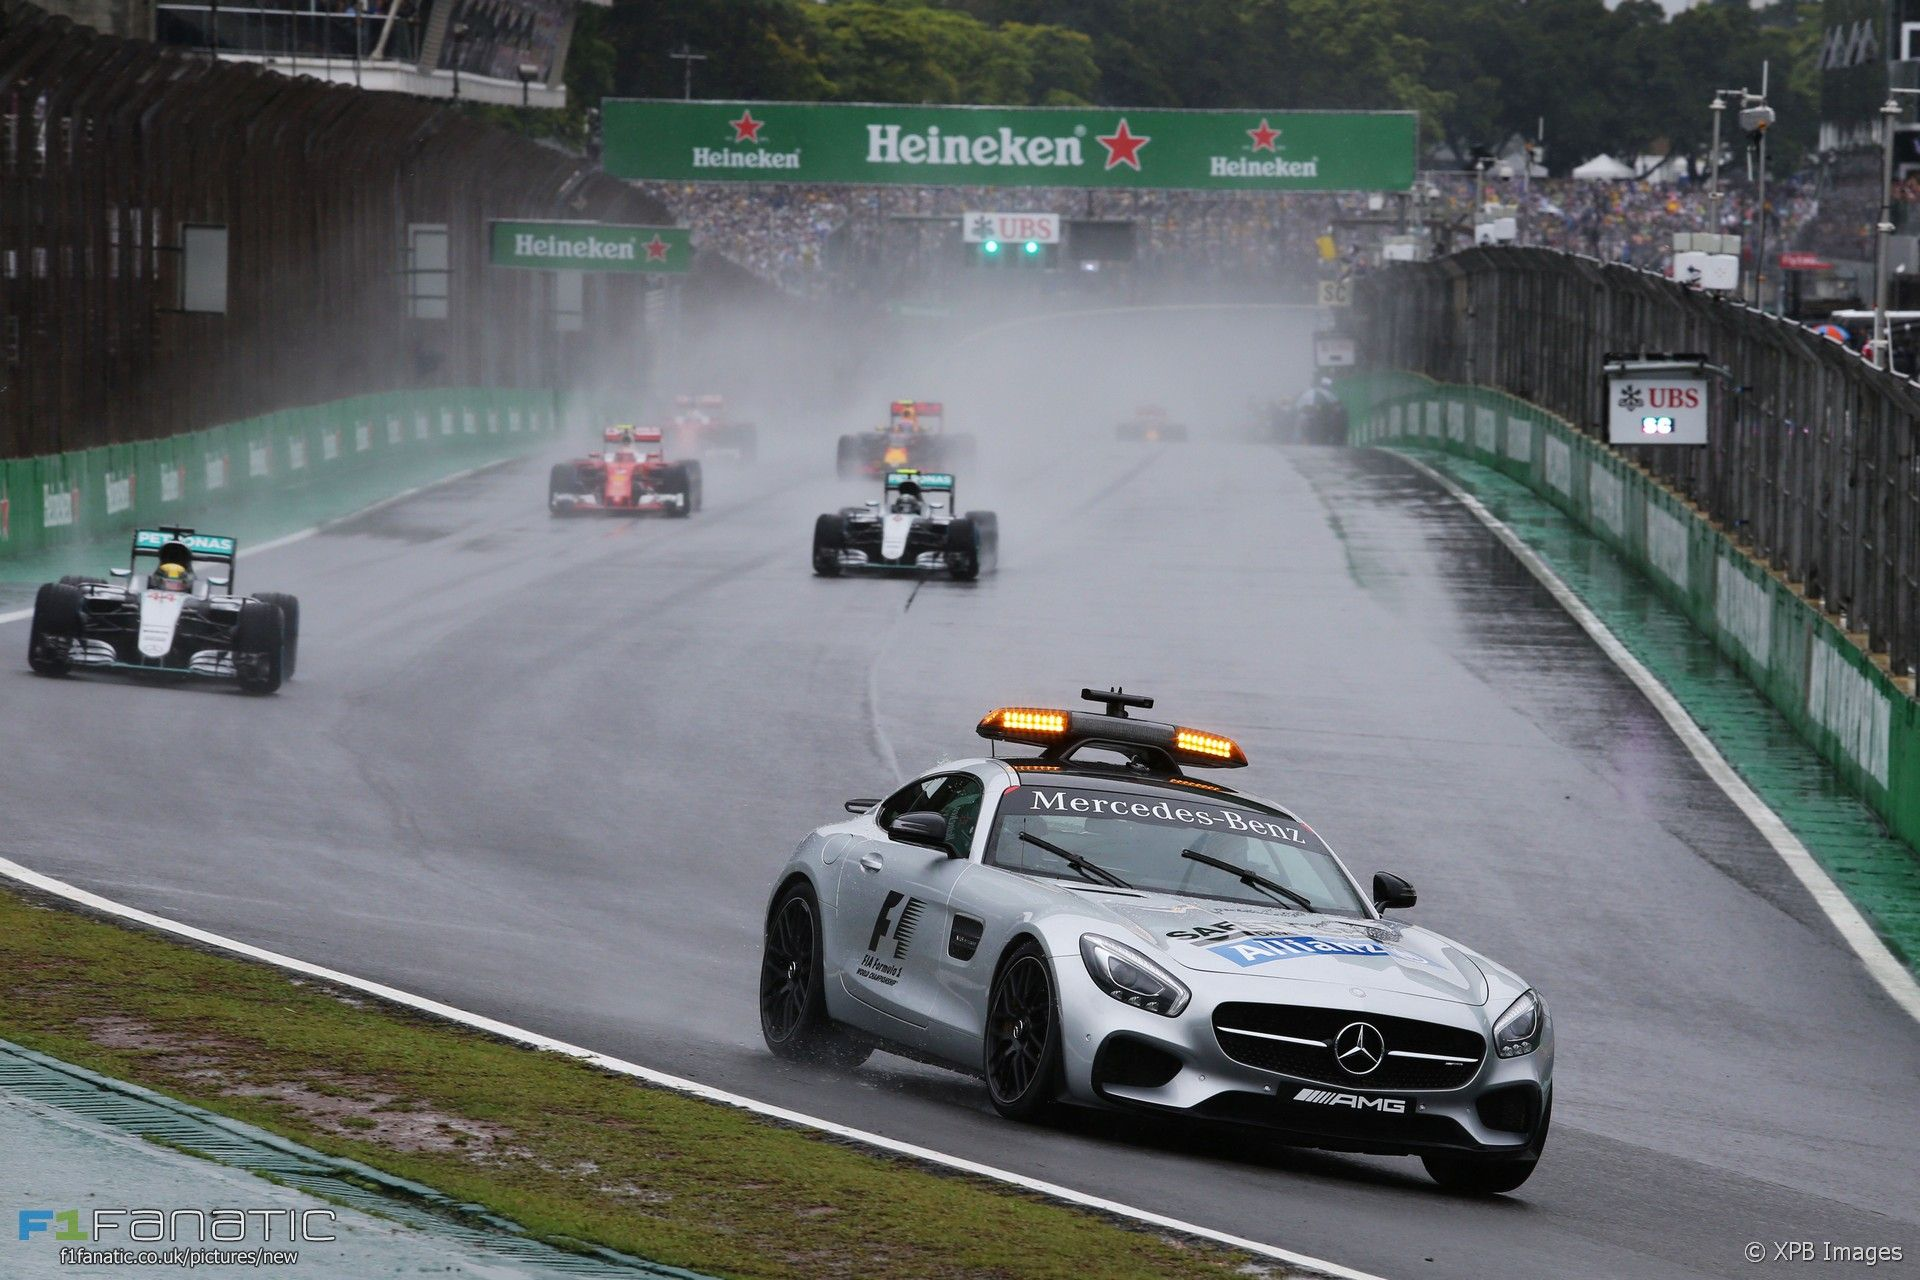 La safety car conduce il gruppo ad Interlagos. Oggi è successo per ben 5 volte (foto da: f1fanatic.co.uk)